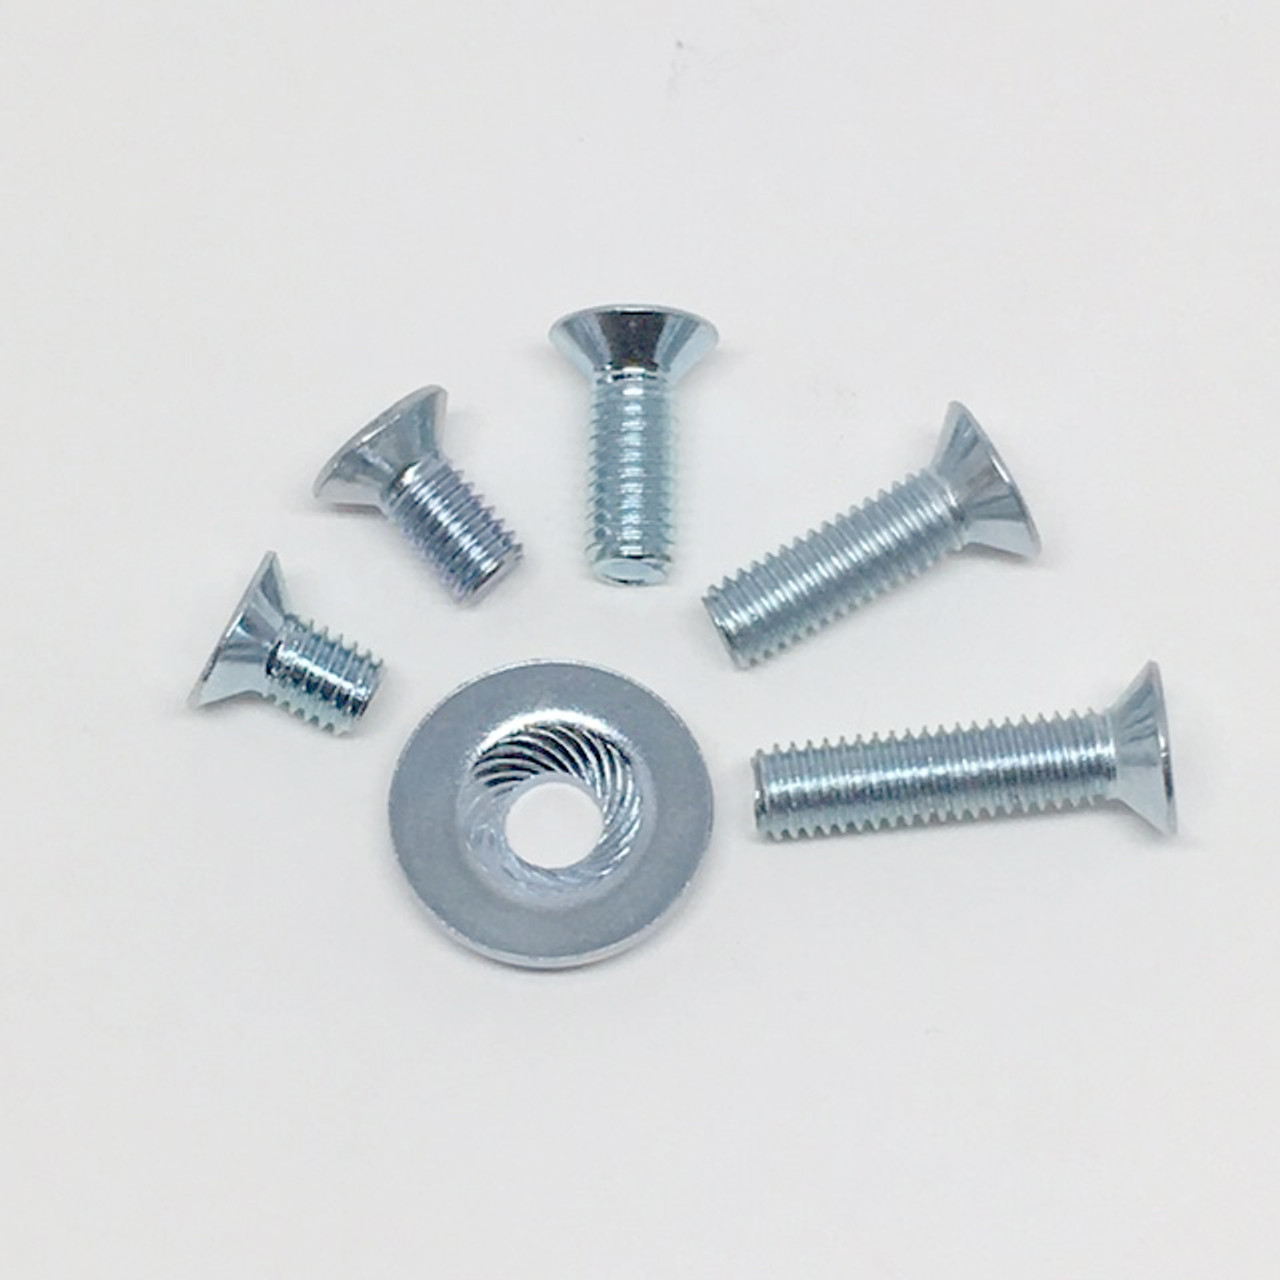 Snowboard Binding Screws (Flathead)